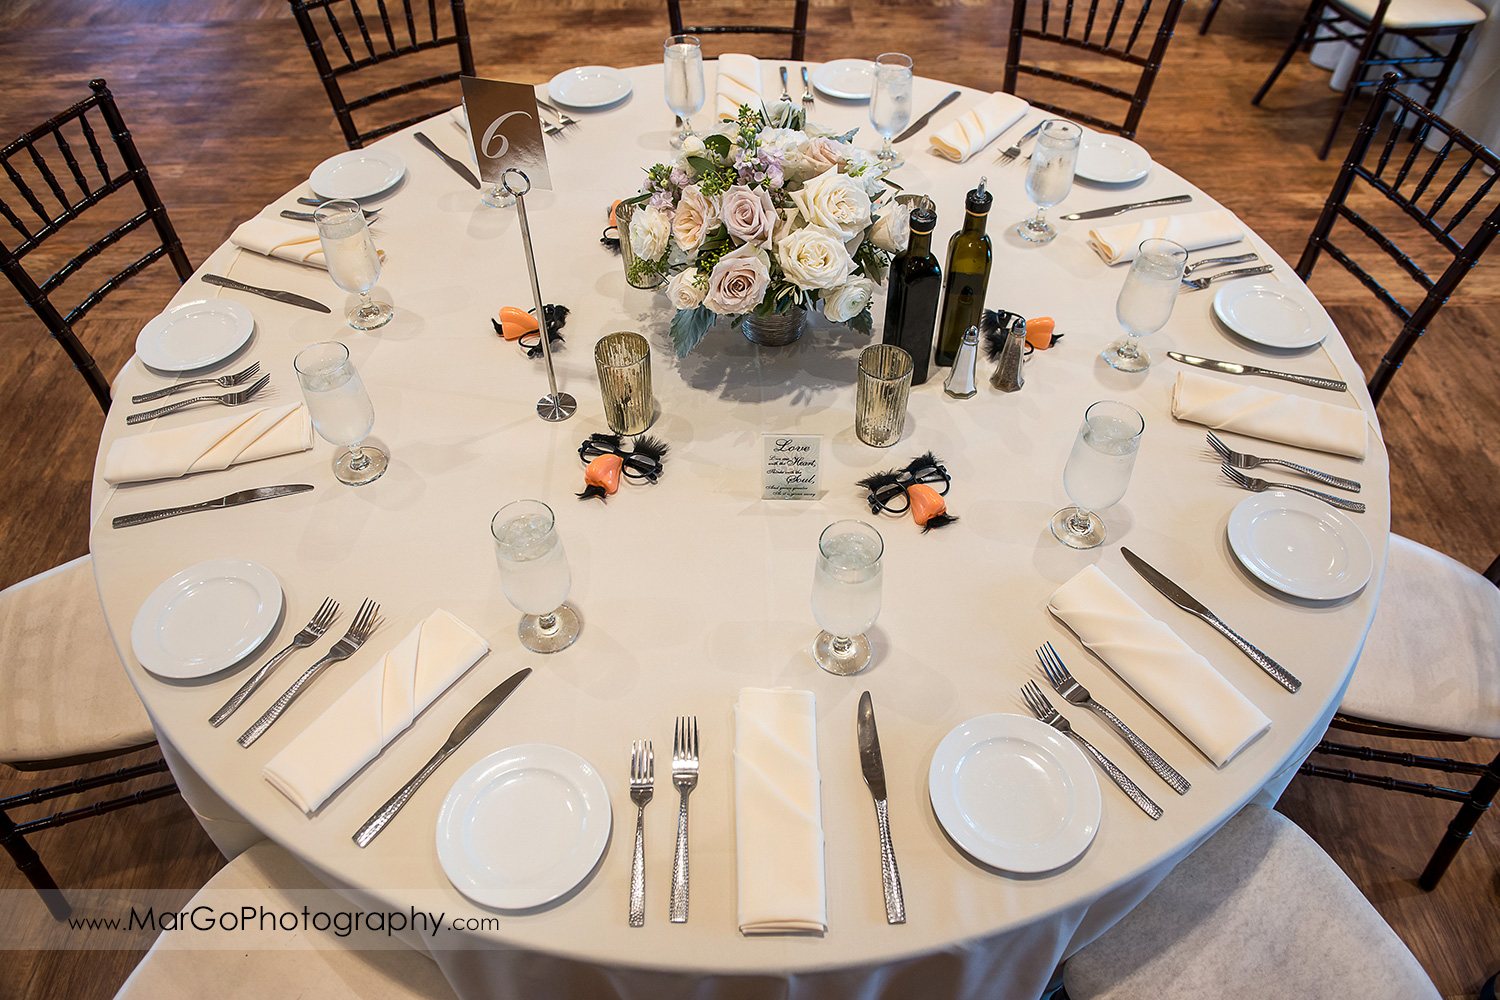 wedding table decor at Livermore Garre Vineyard and Winery reception